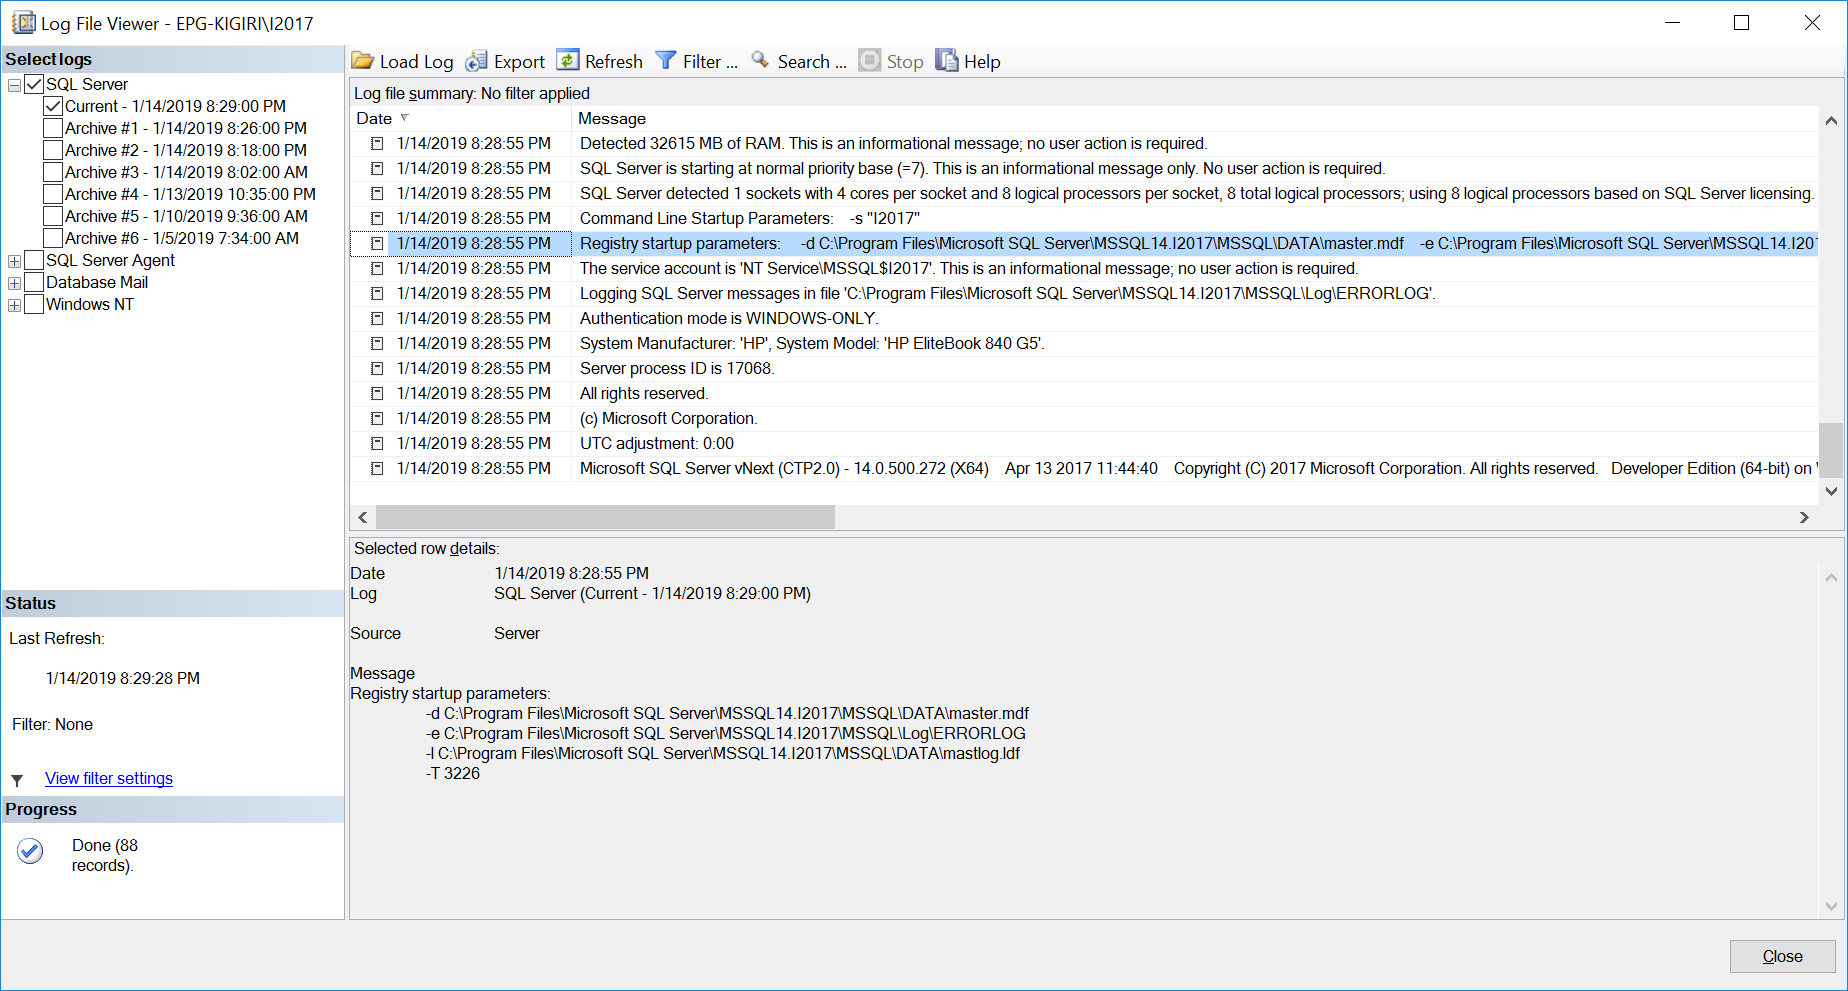 Startup parameters indicated in the sql server error log